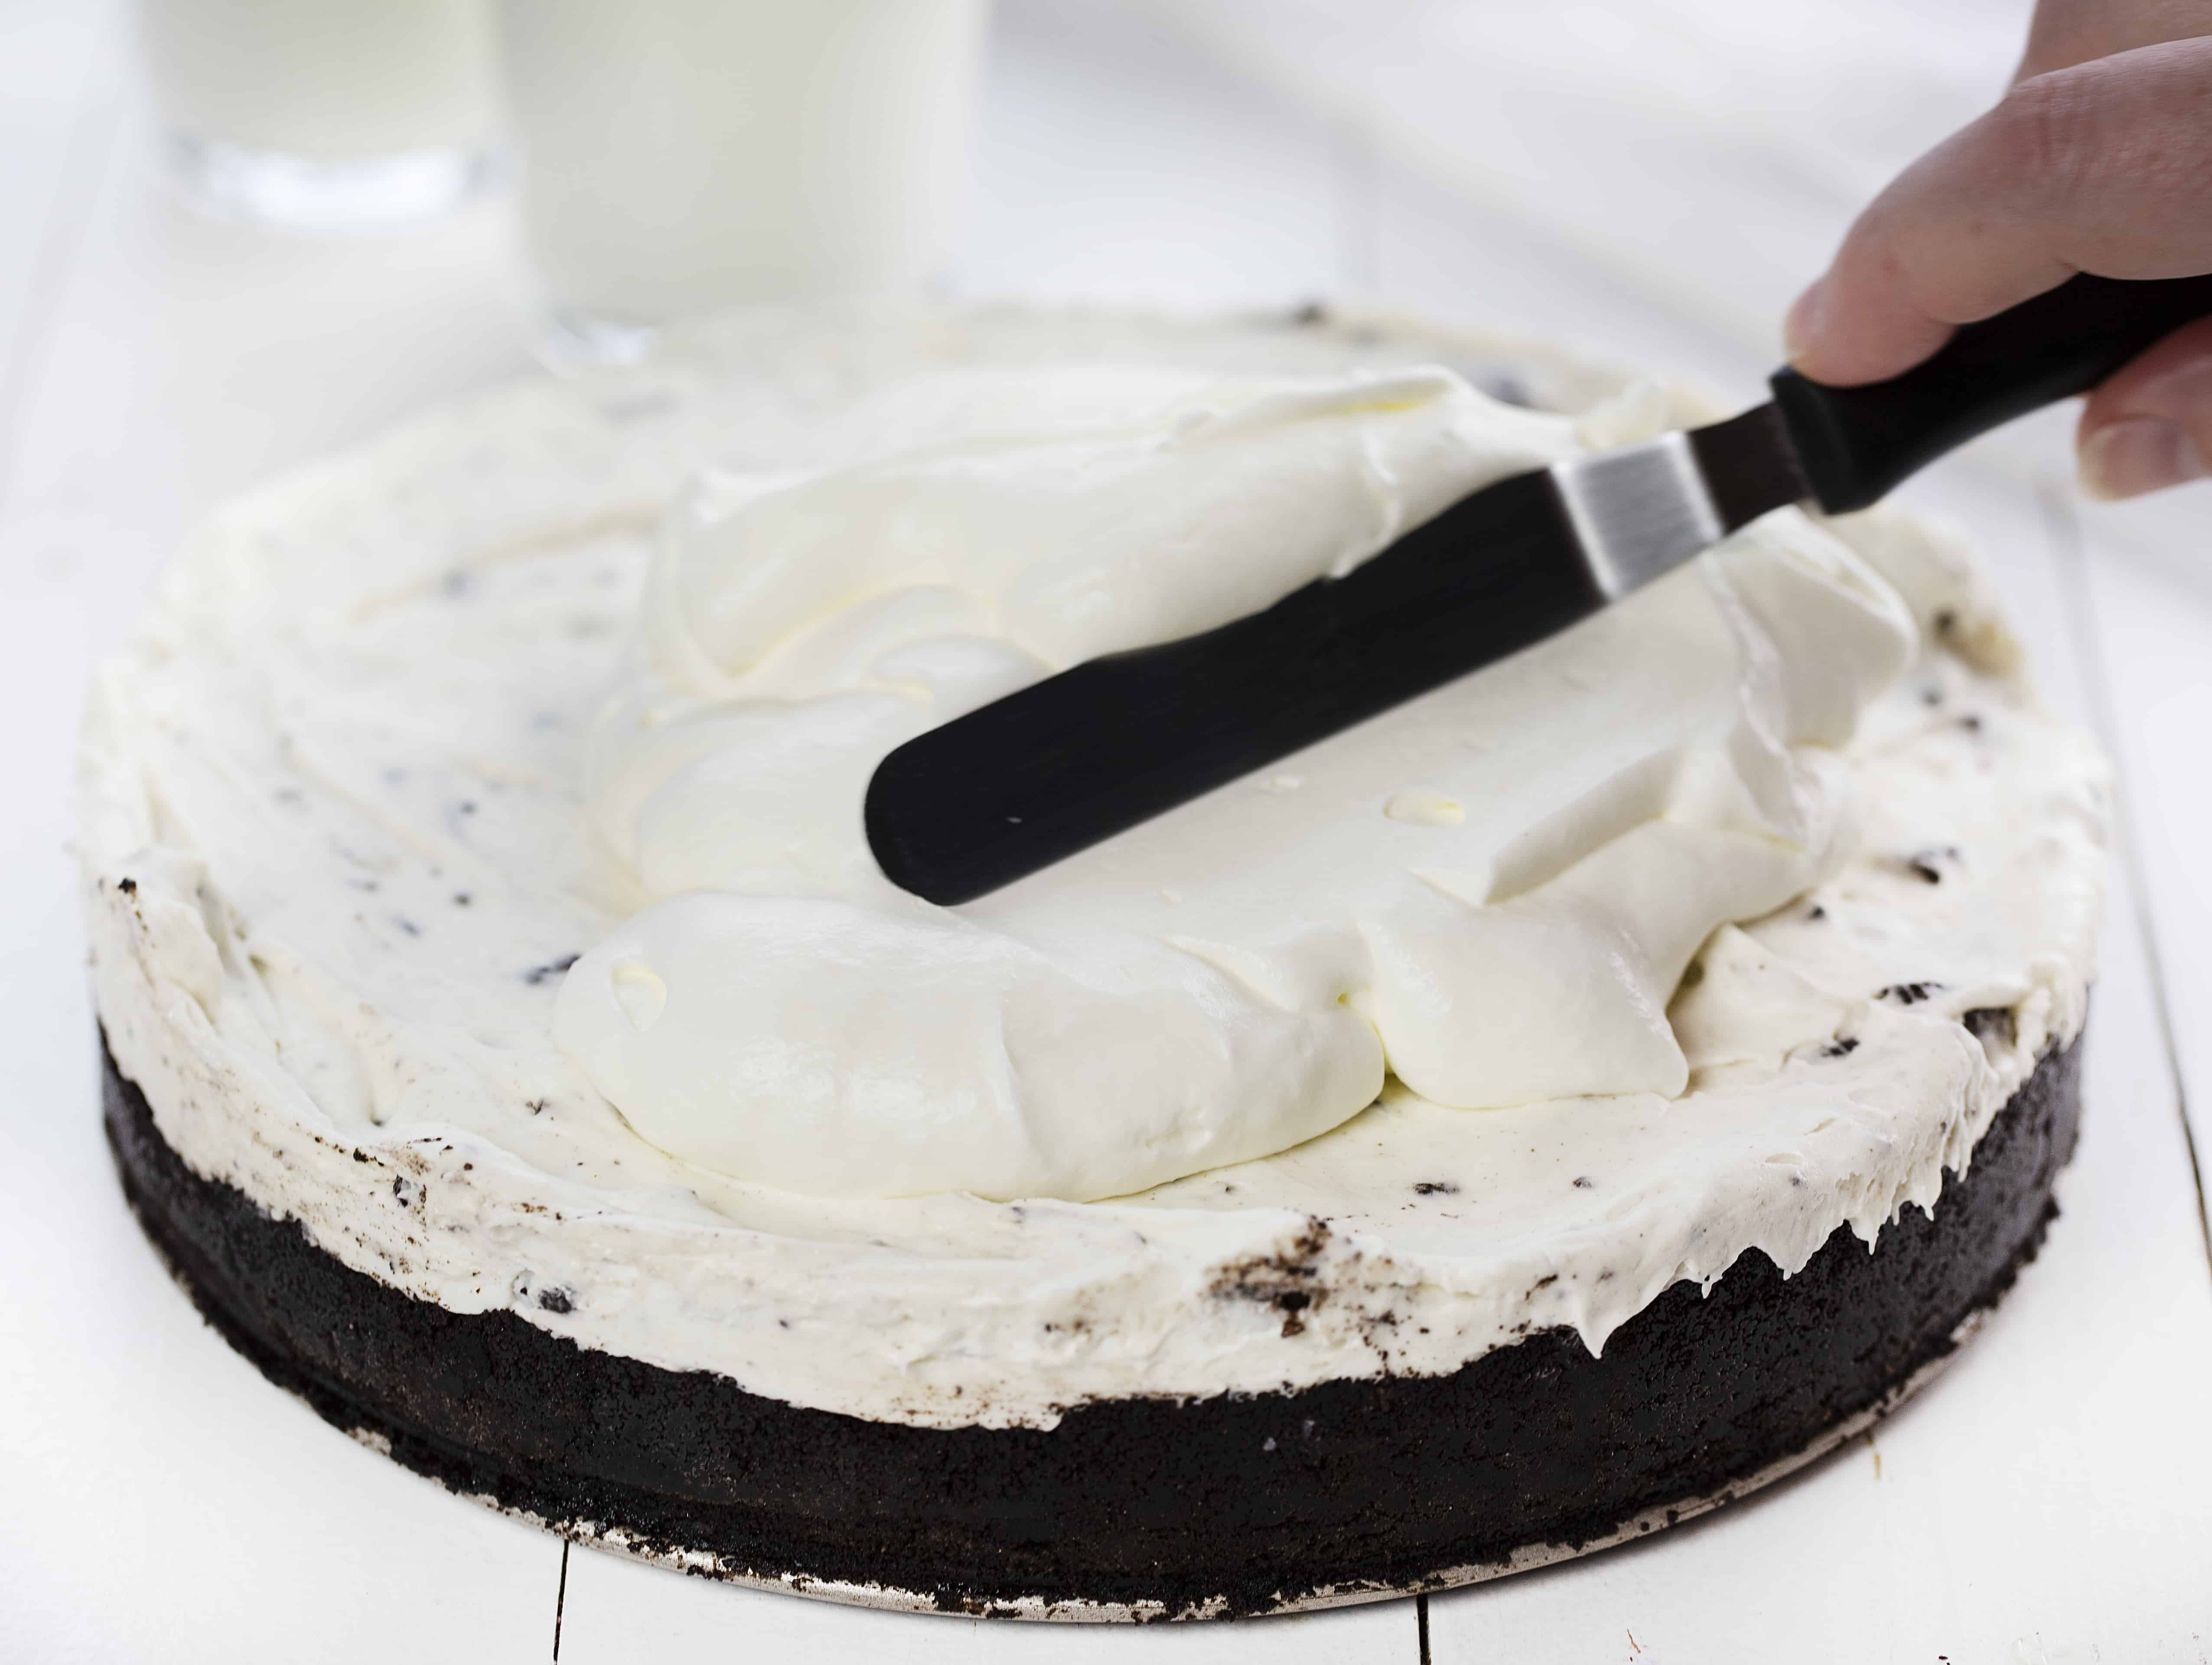 No Bake Oreo Cheesecake with Homemade Whipped Topping Being Spread on Top